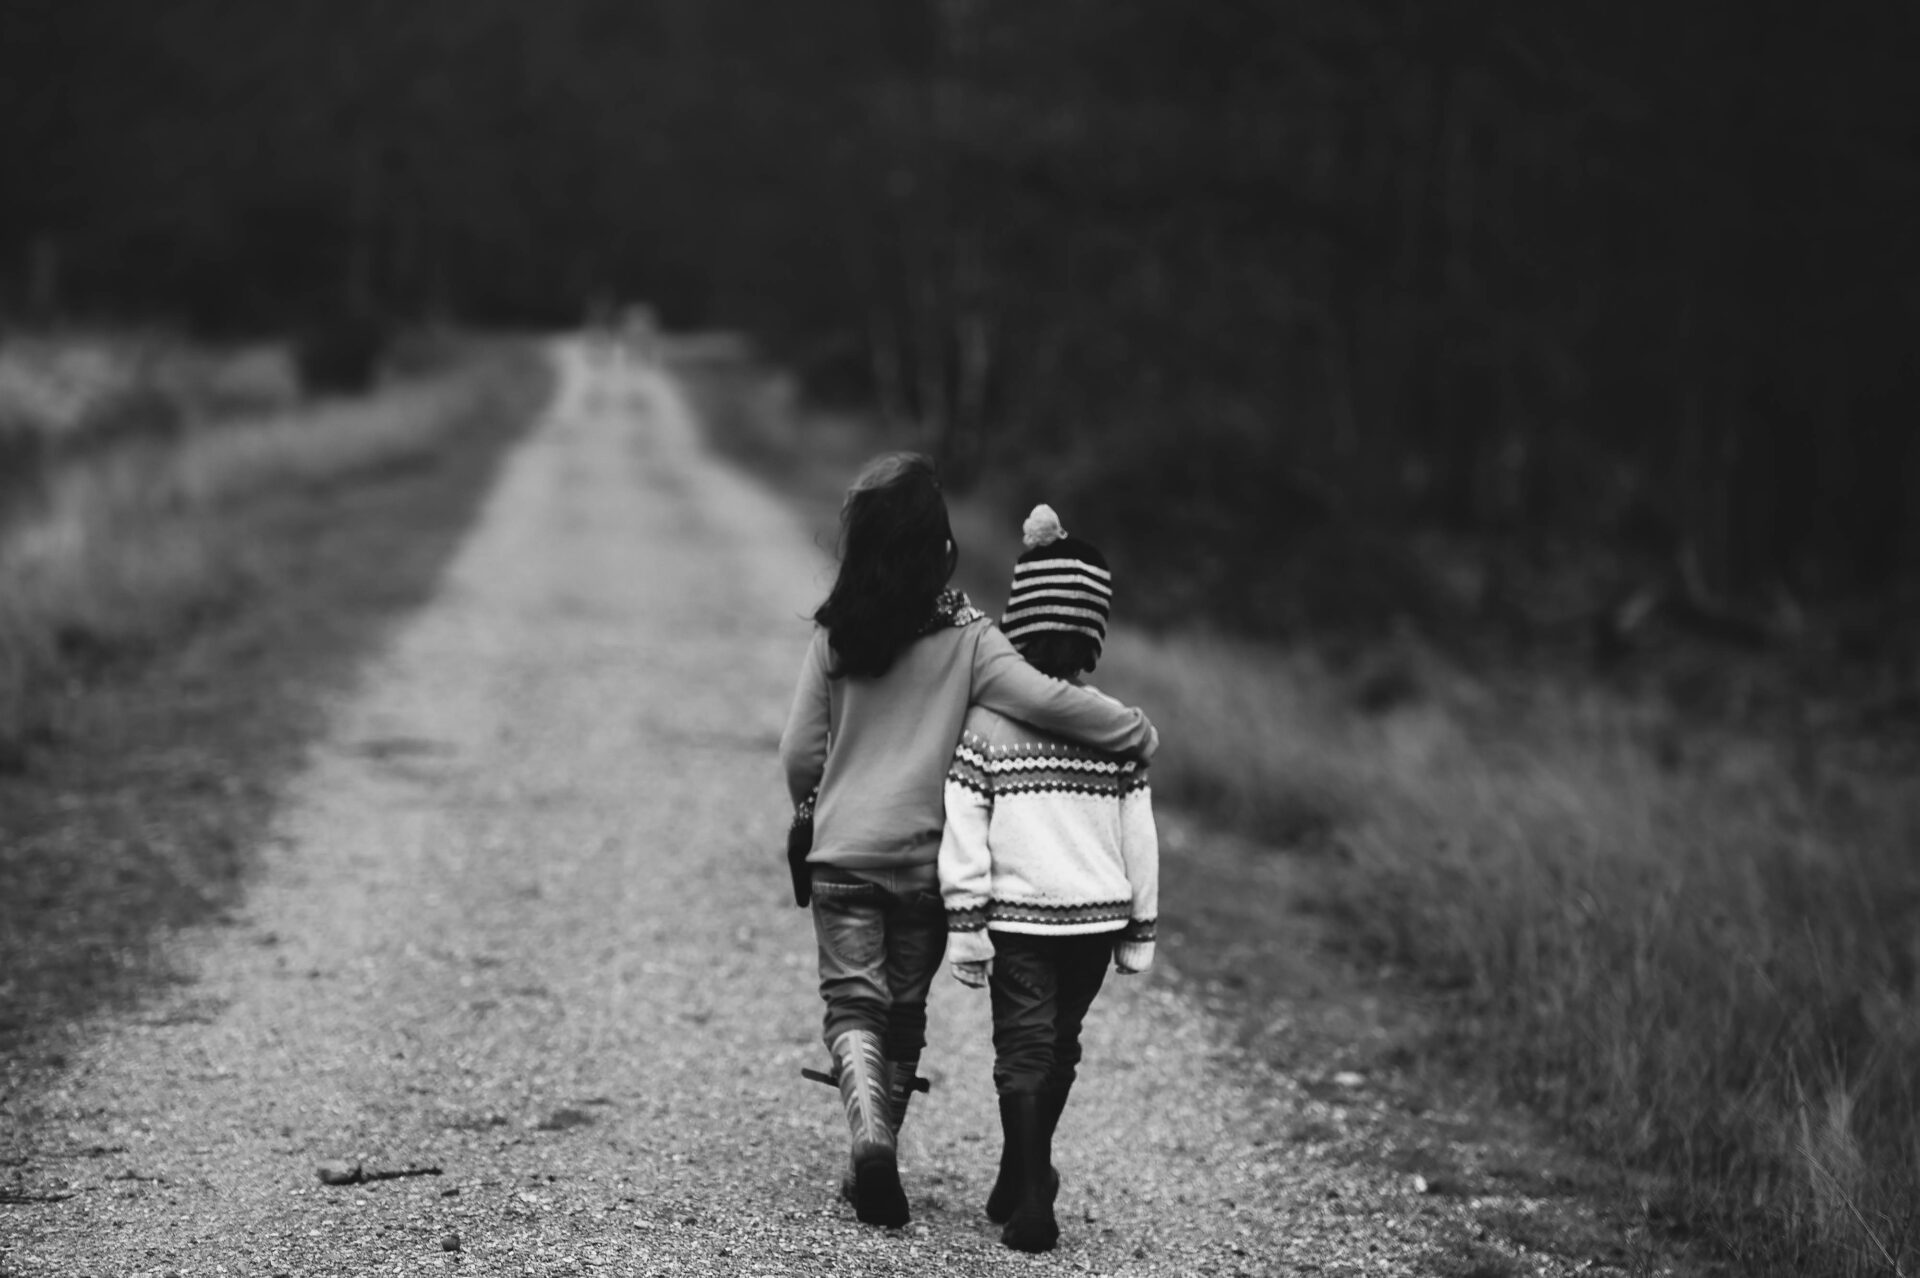 Young boys walk away down road with arms around each other in black and white photo